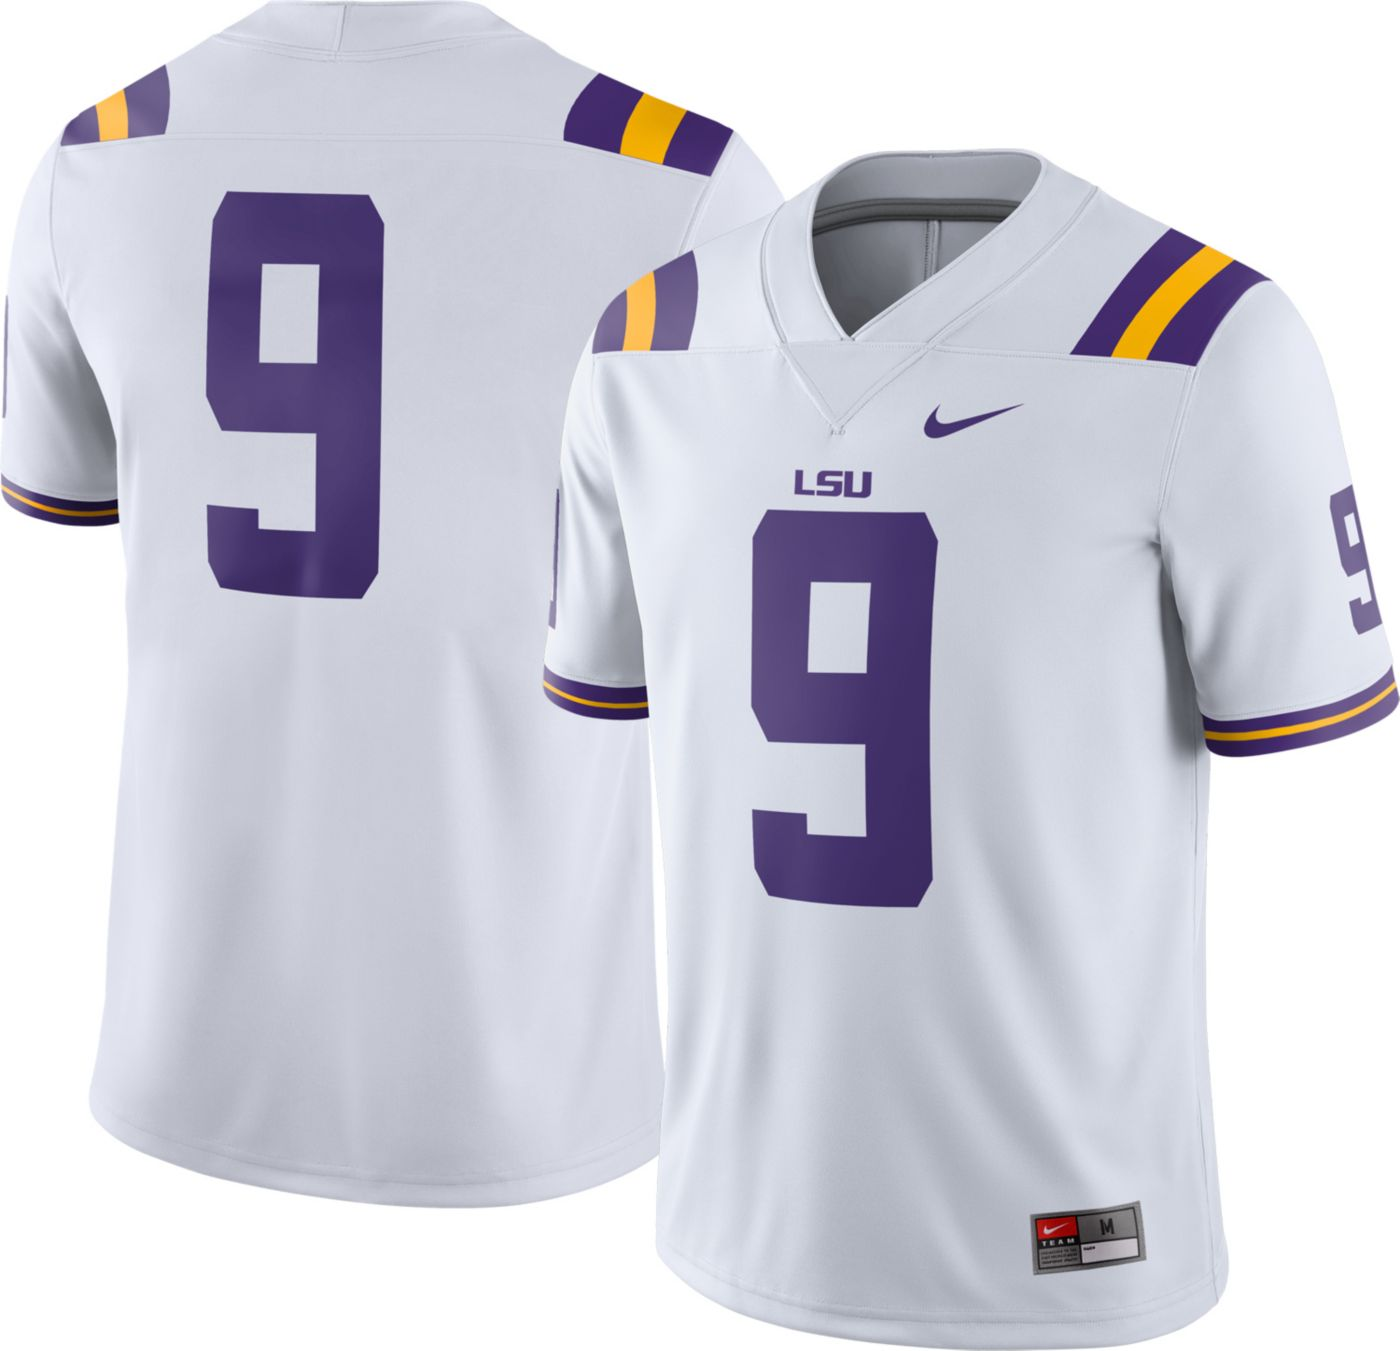 Nike Men's LSU Tigers #9 Dri-FIT Game Football White Jersey